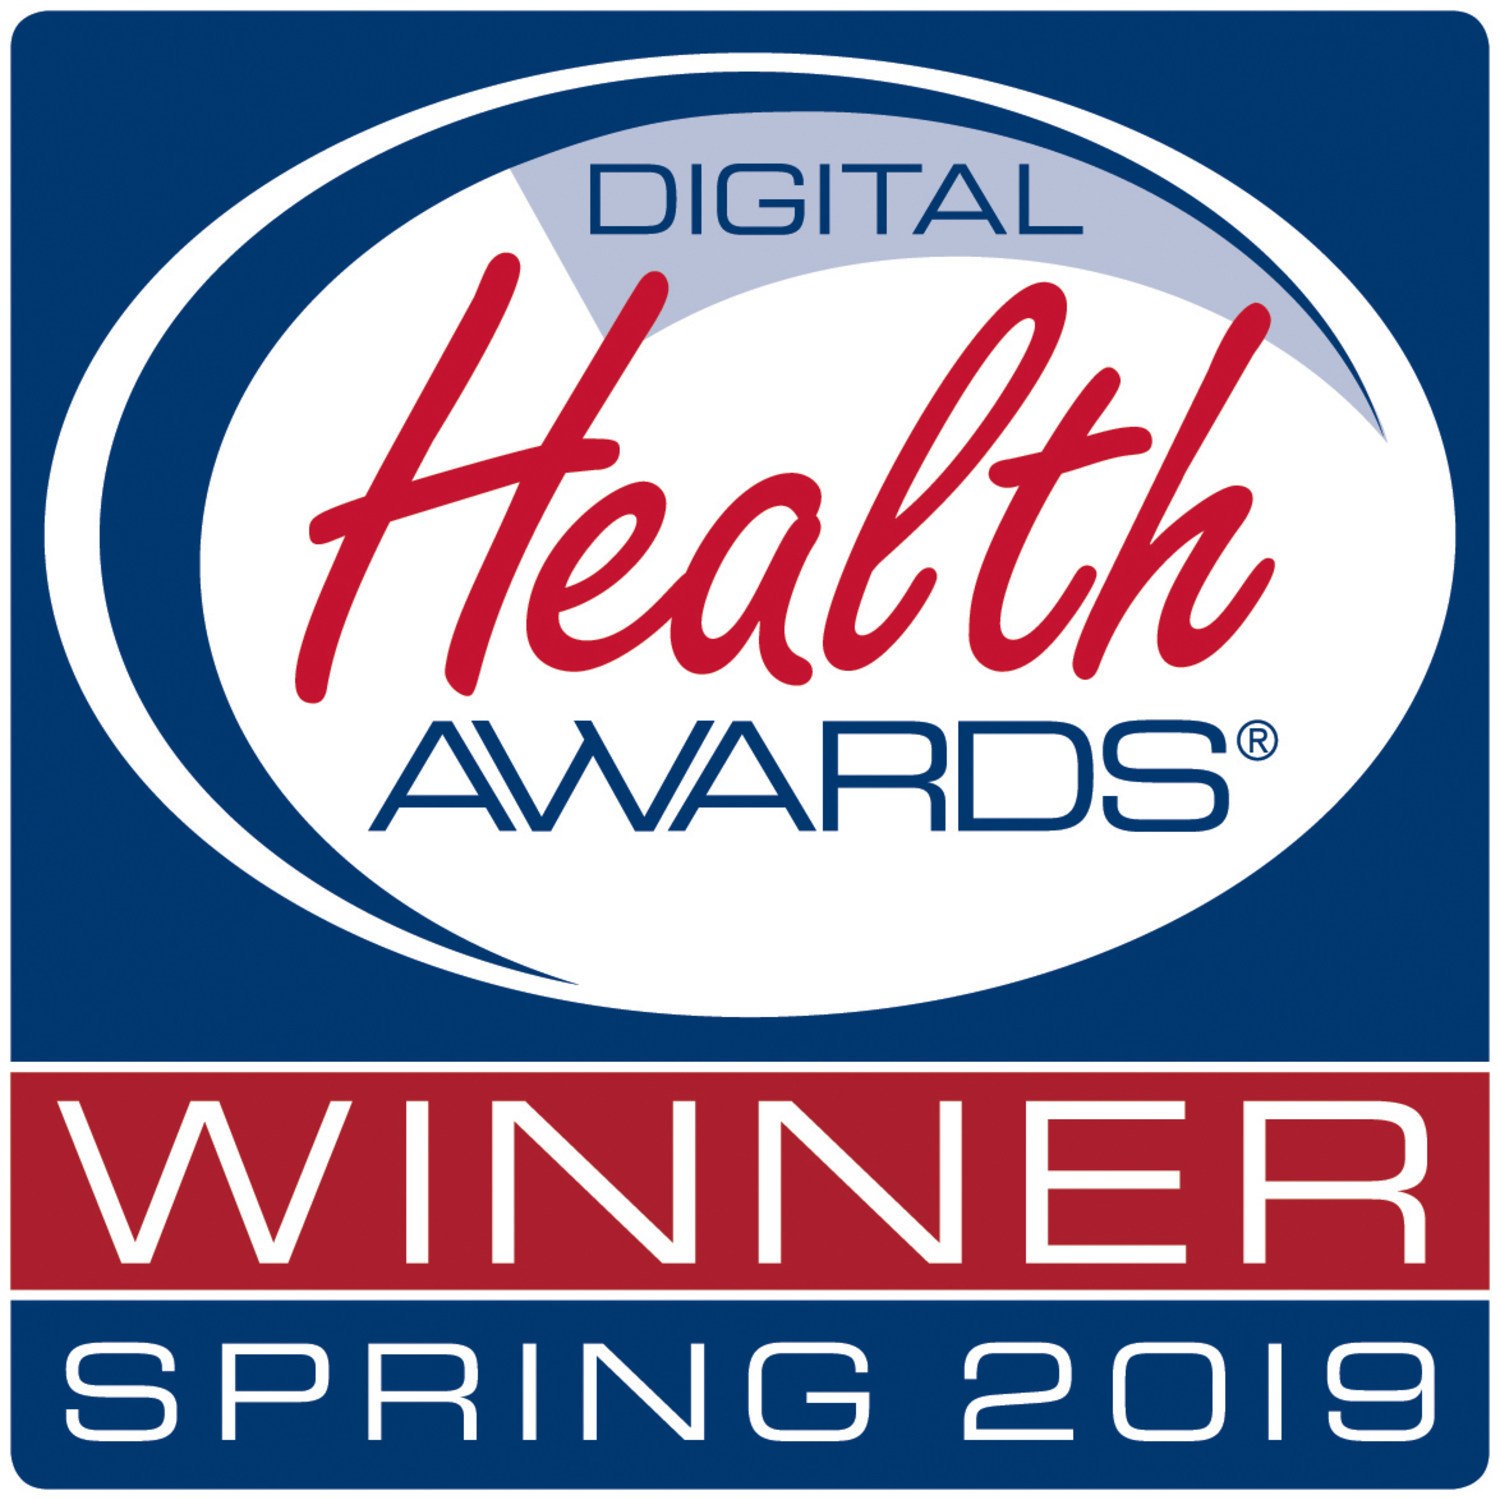 Spectralink Honored with Two Digital Health Awards